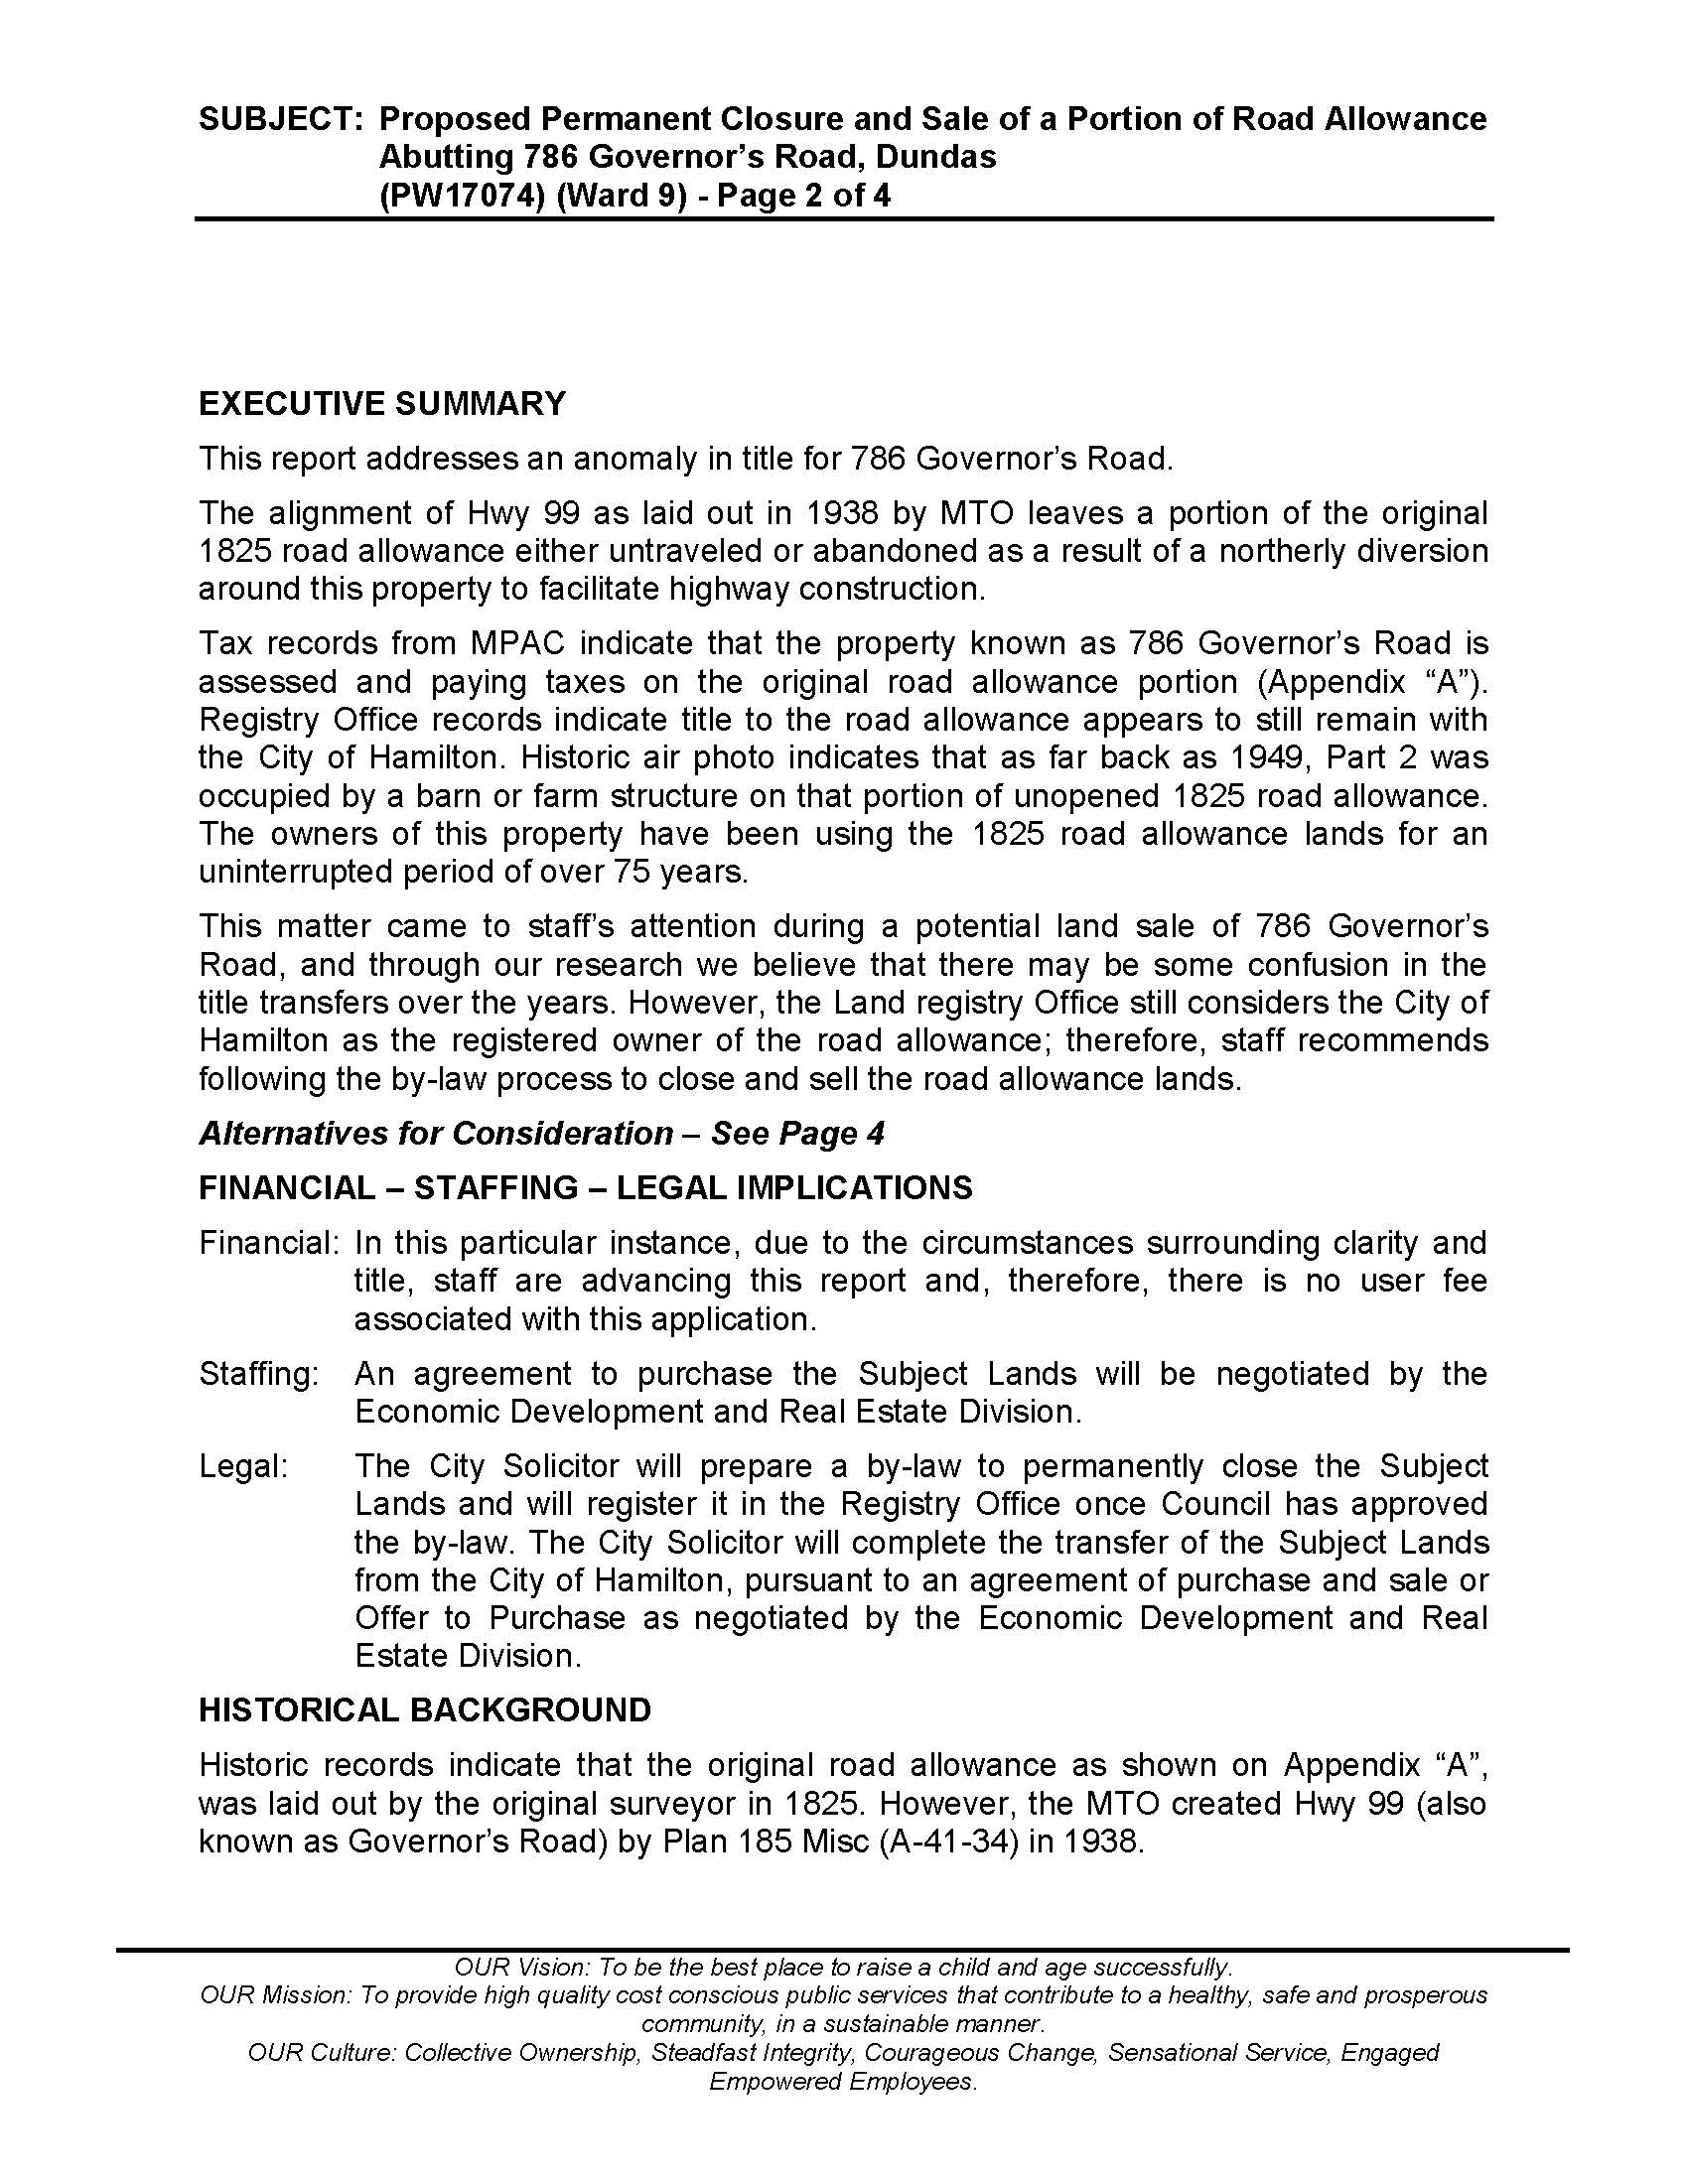 Proposed Permanent Closure and Sale of a Portion o - PW17074_Page_2